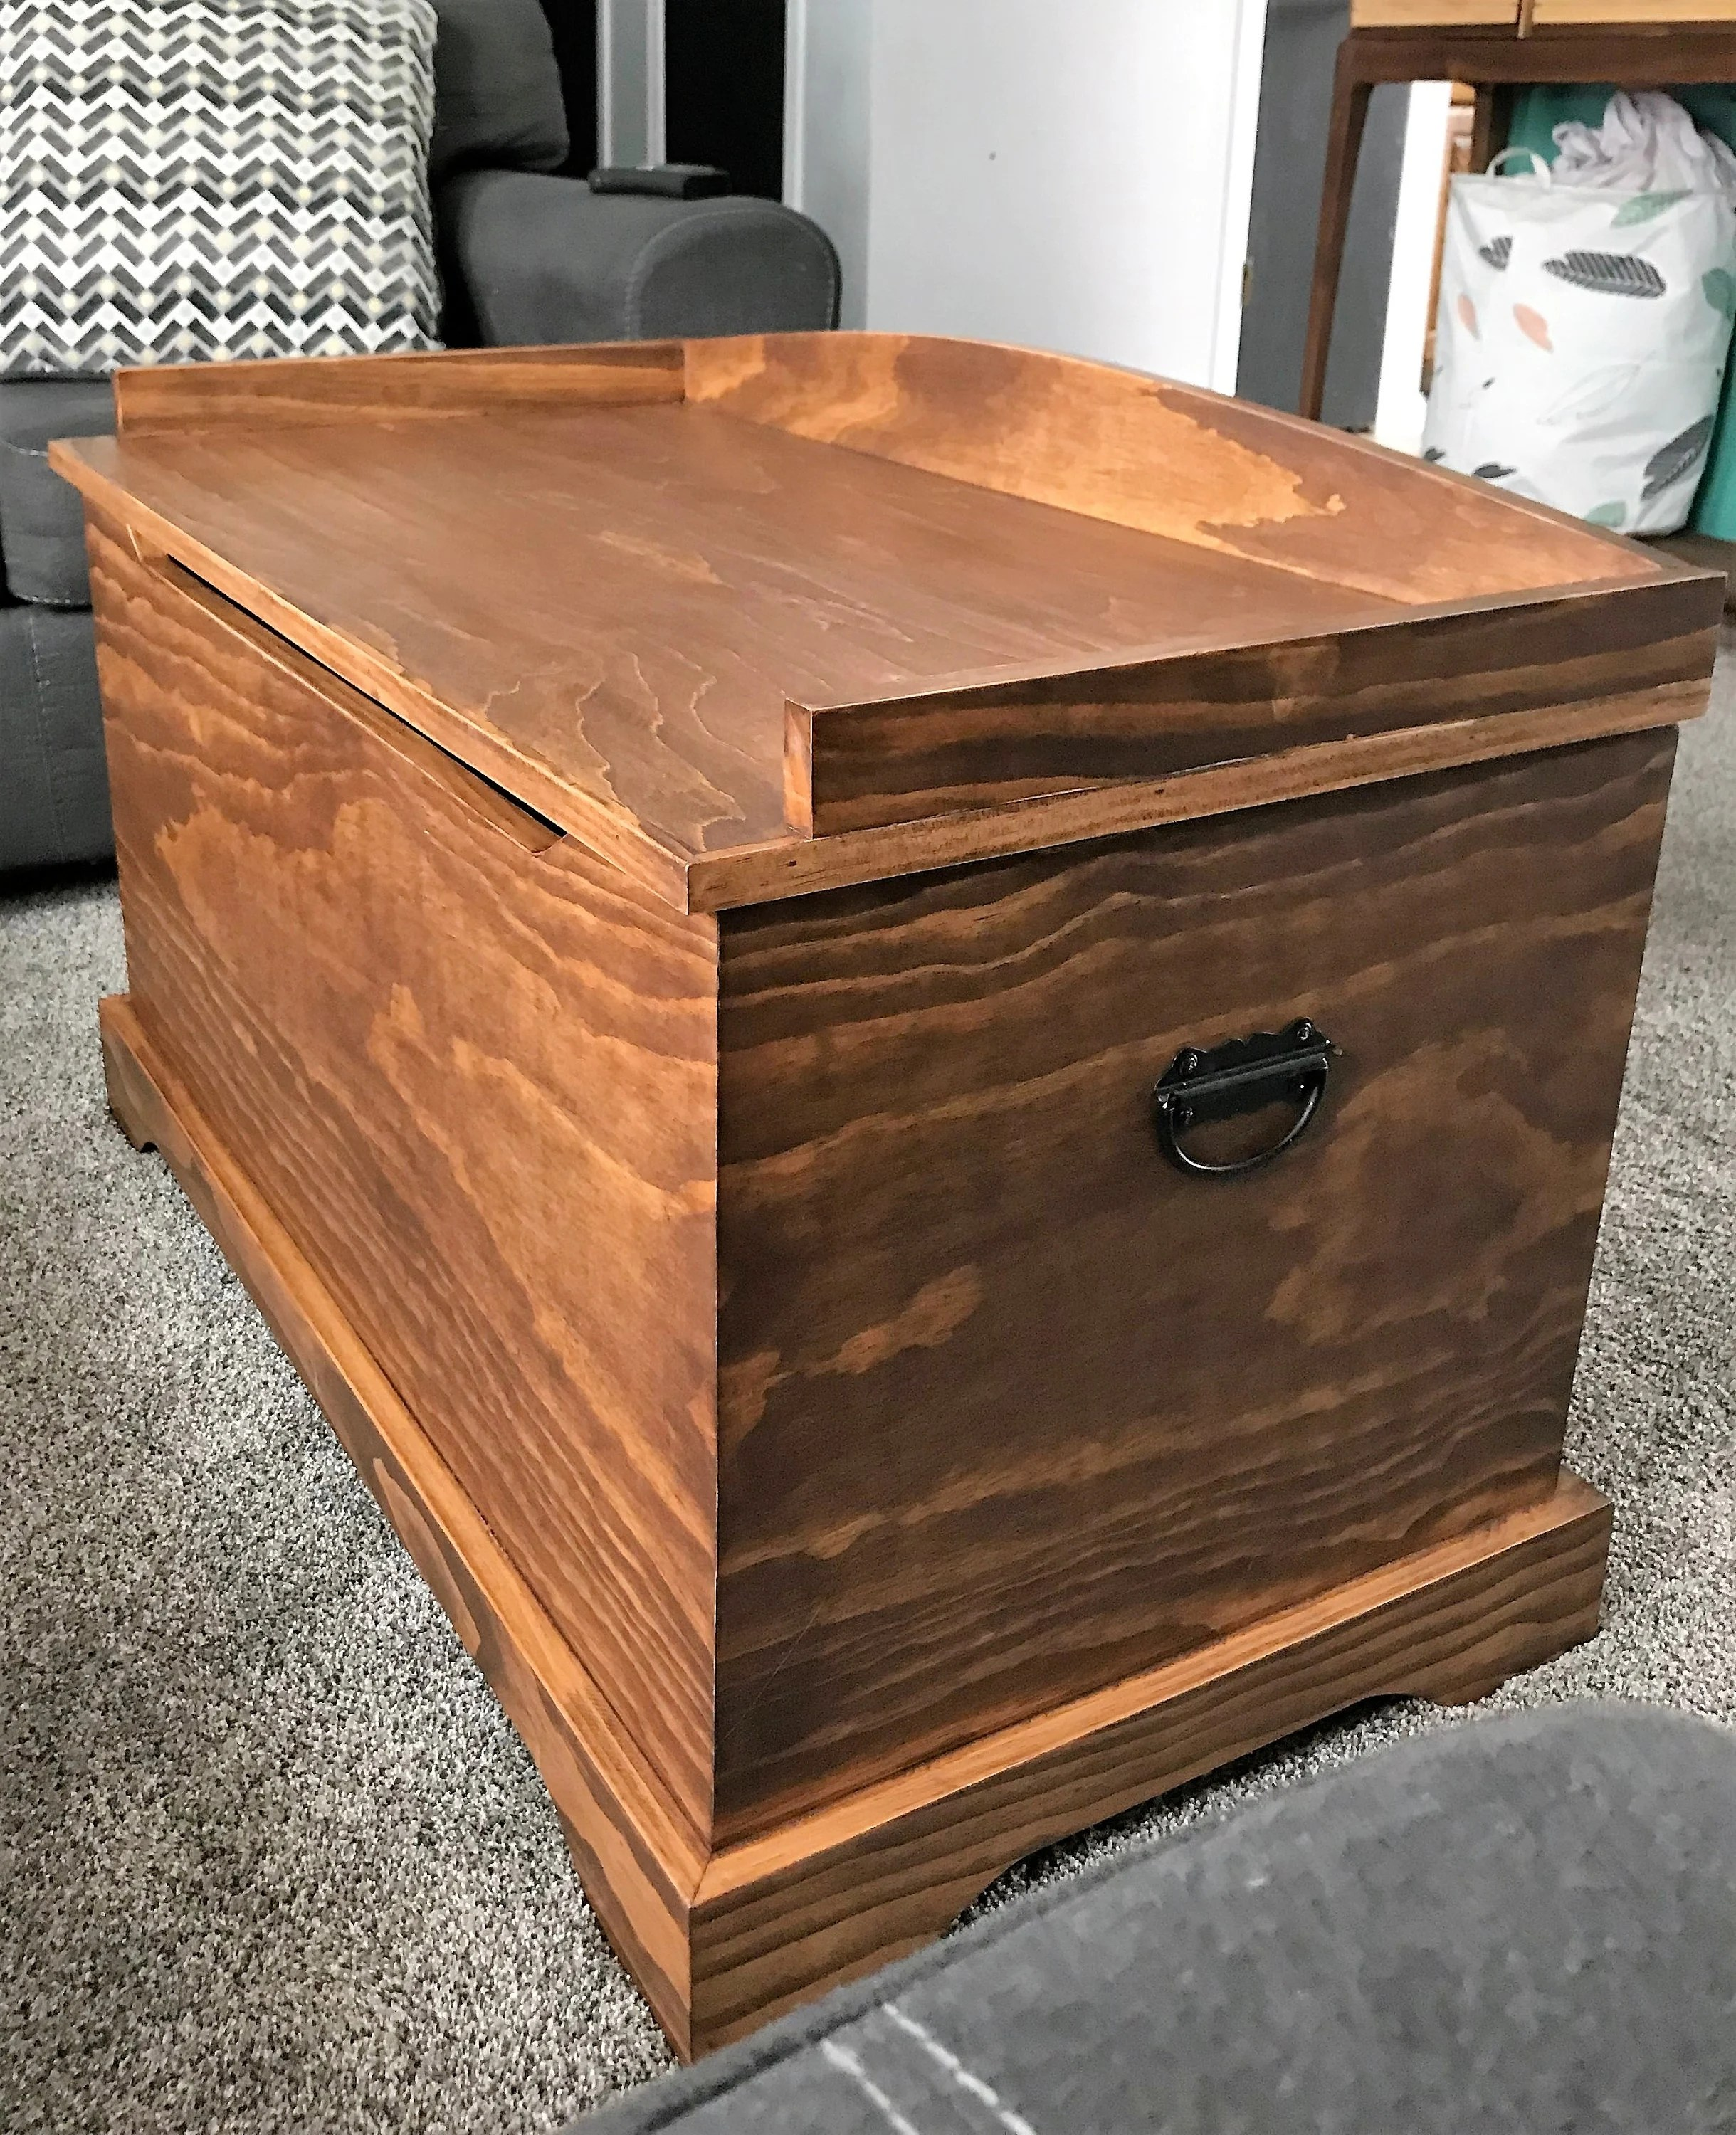 Wood Blanket Box Blanket Chest Rustic Blanket Chest Rustic Toy Box Hope Chest Toy Box Wood Chest Wood Blanket Chest Wood Toy Box Dark Walnut